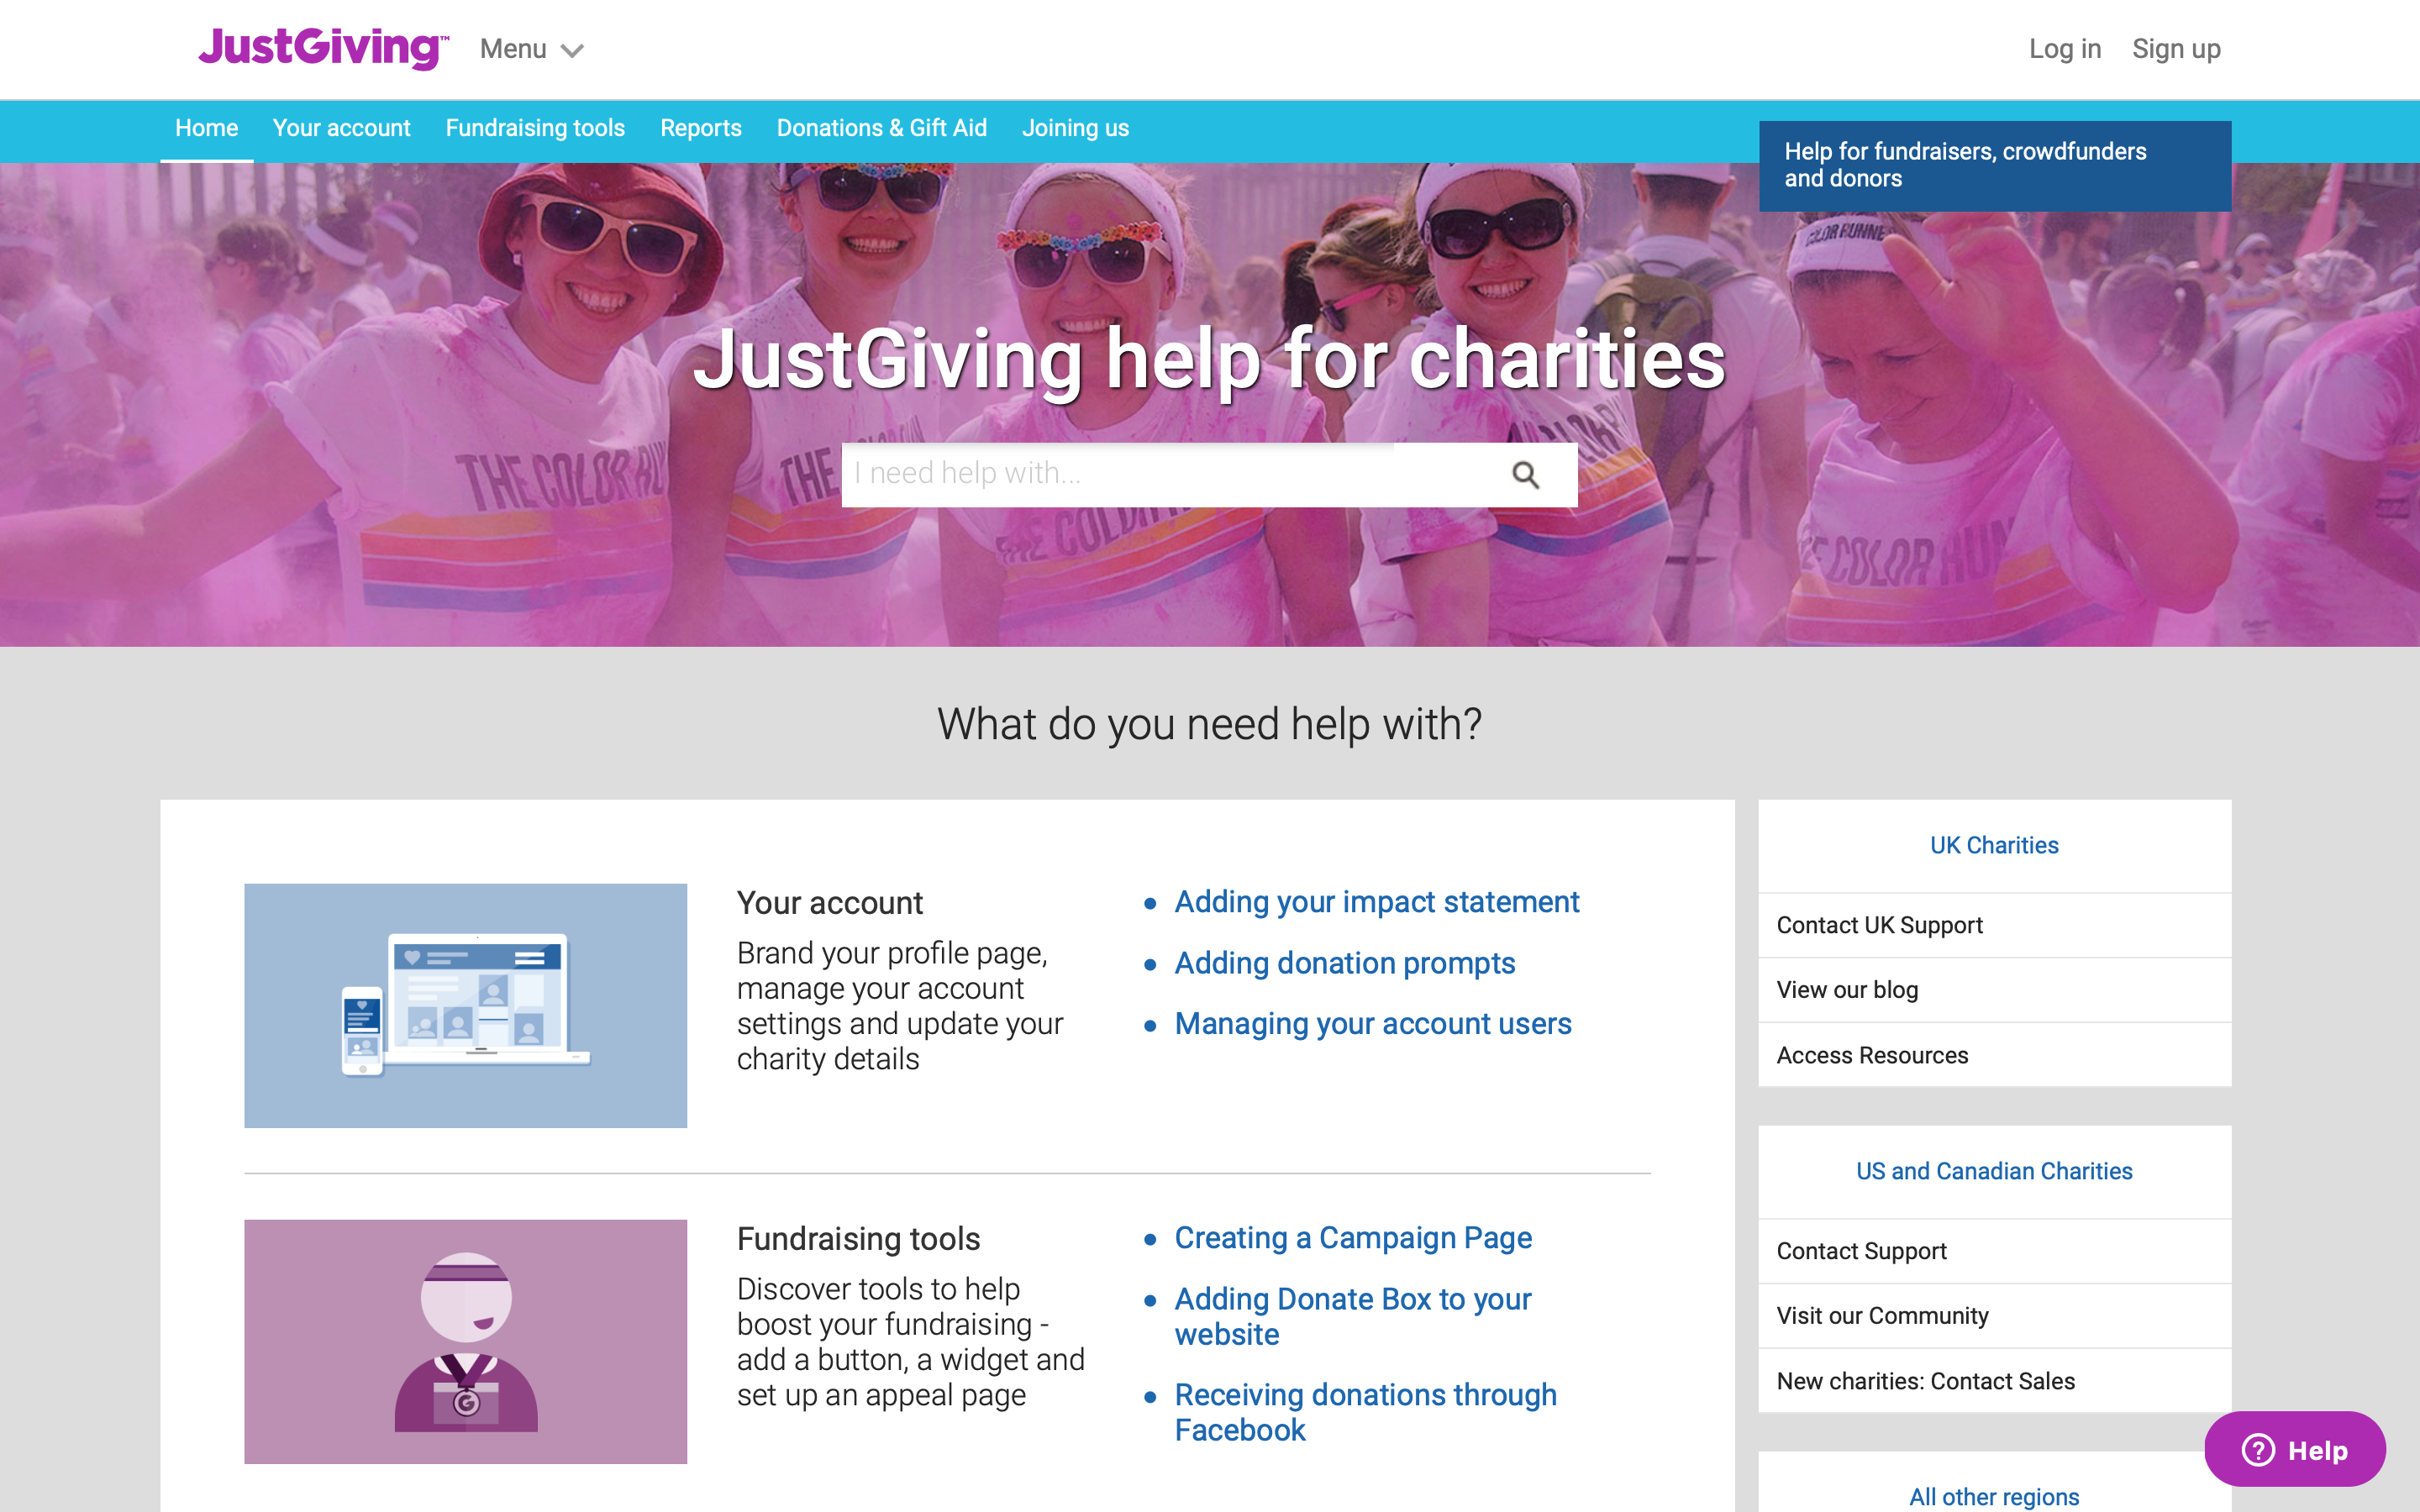 JustGiving help for charities